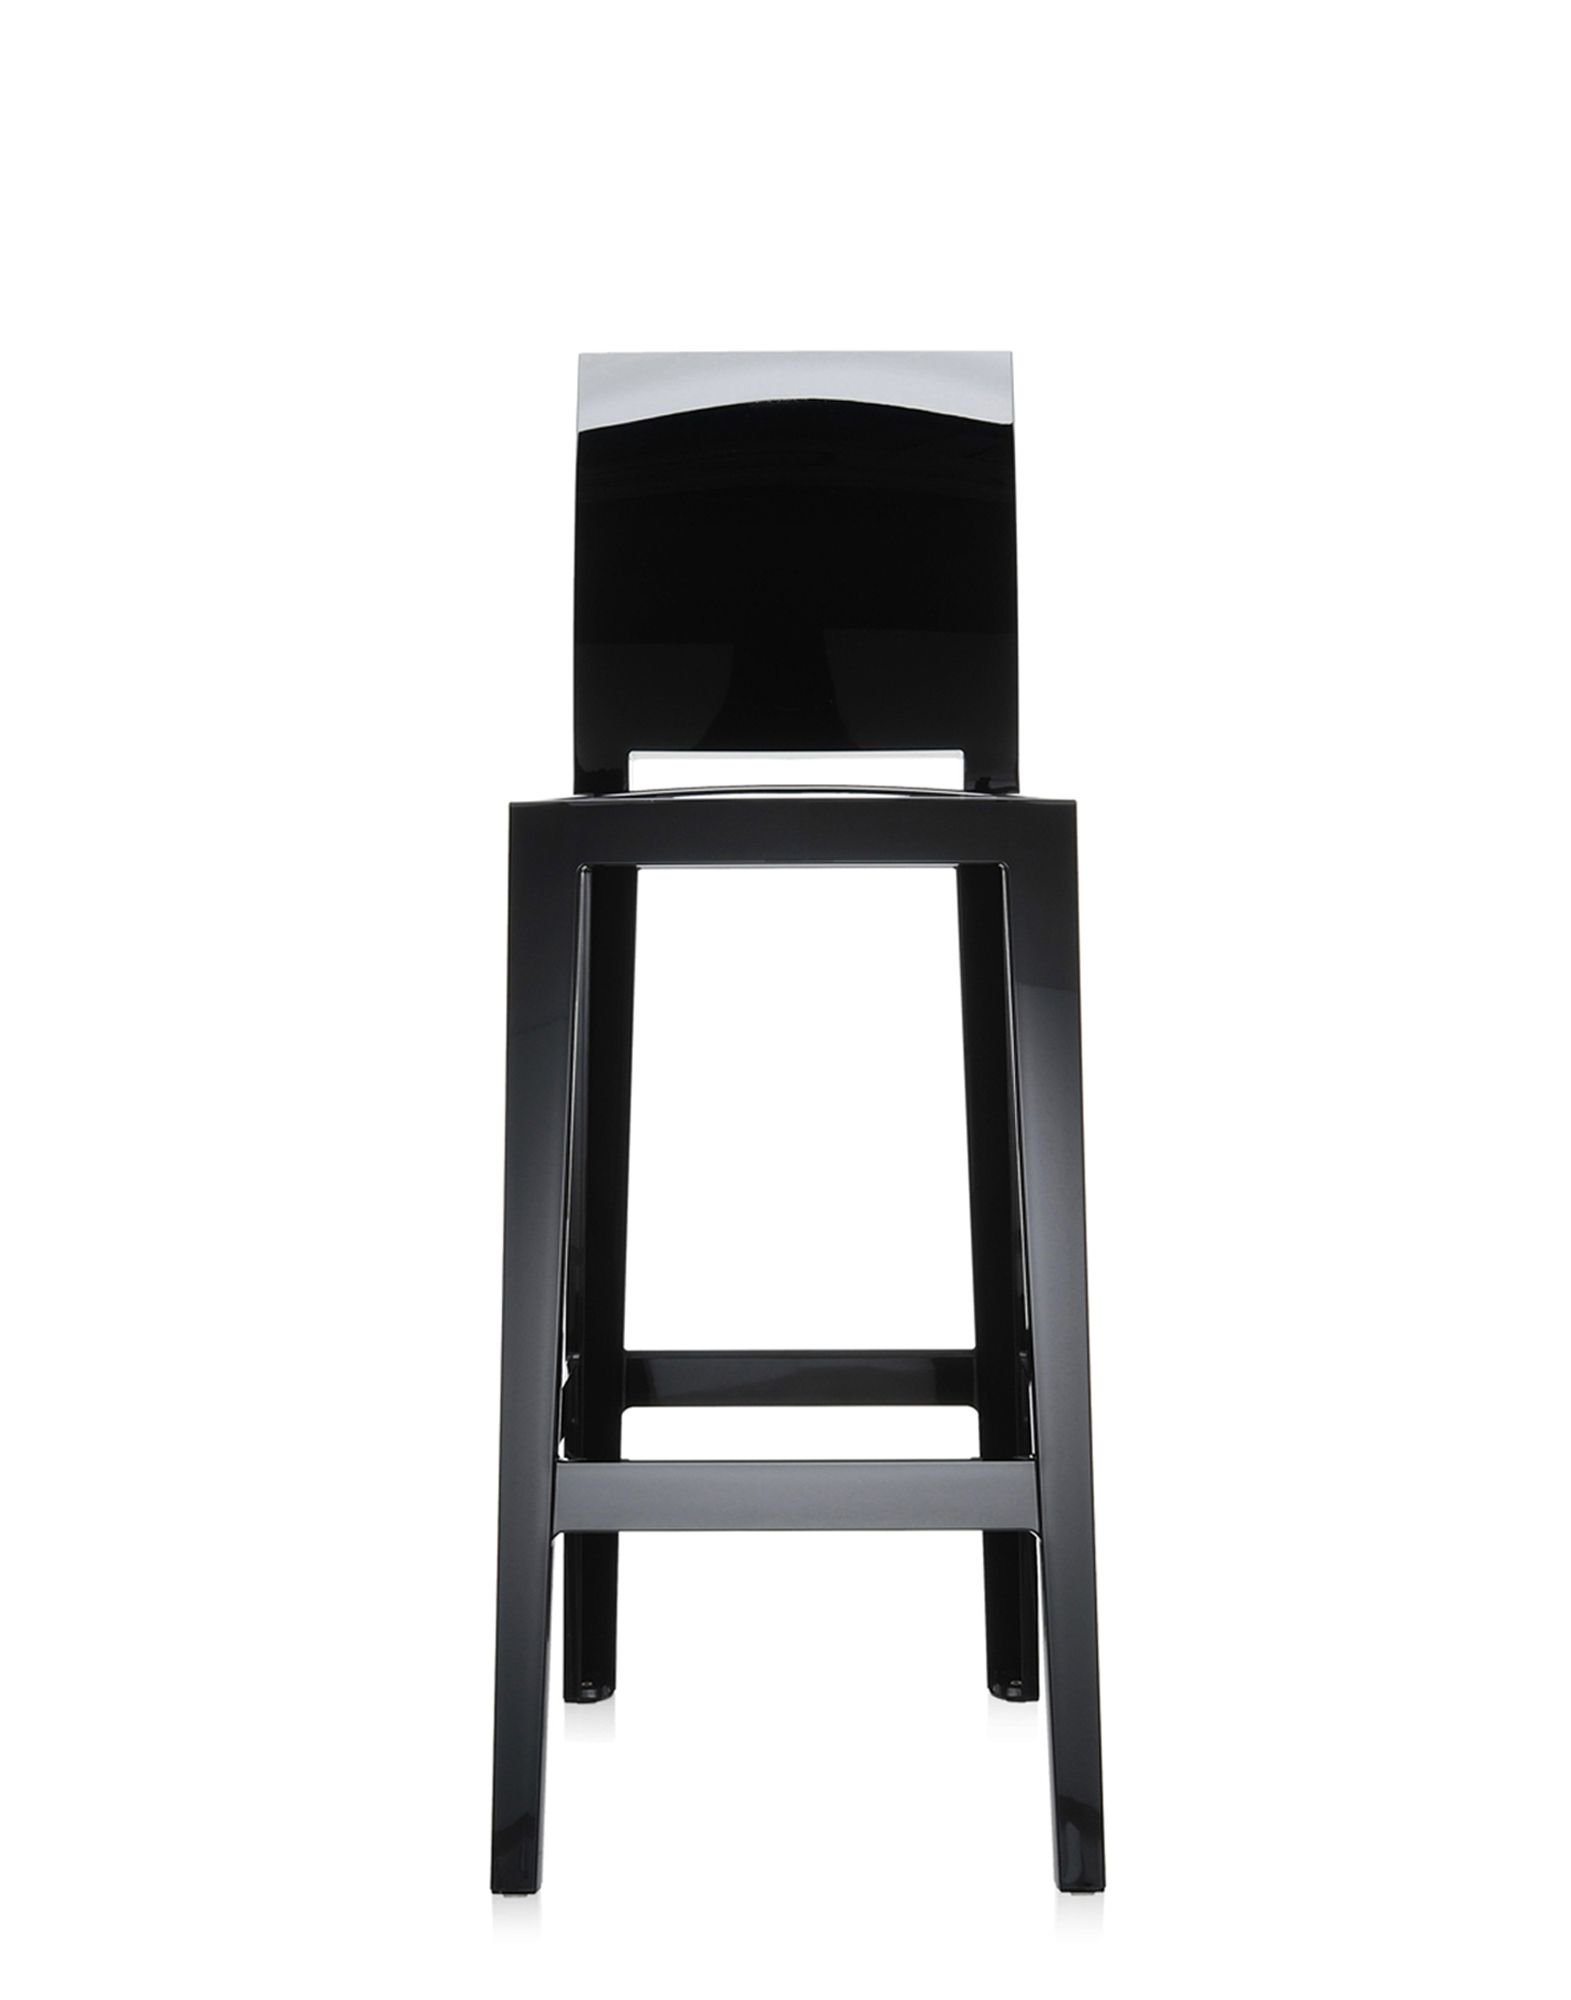 One More Please Stool from Kartell, designed by Philippe Starck